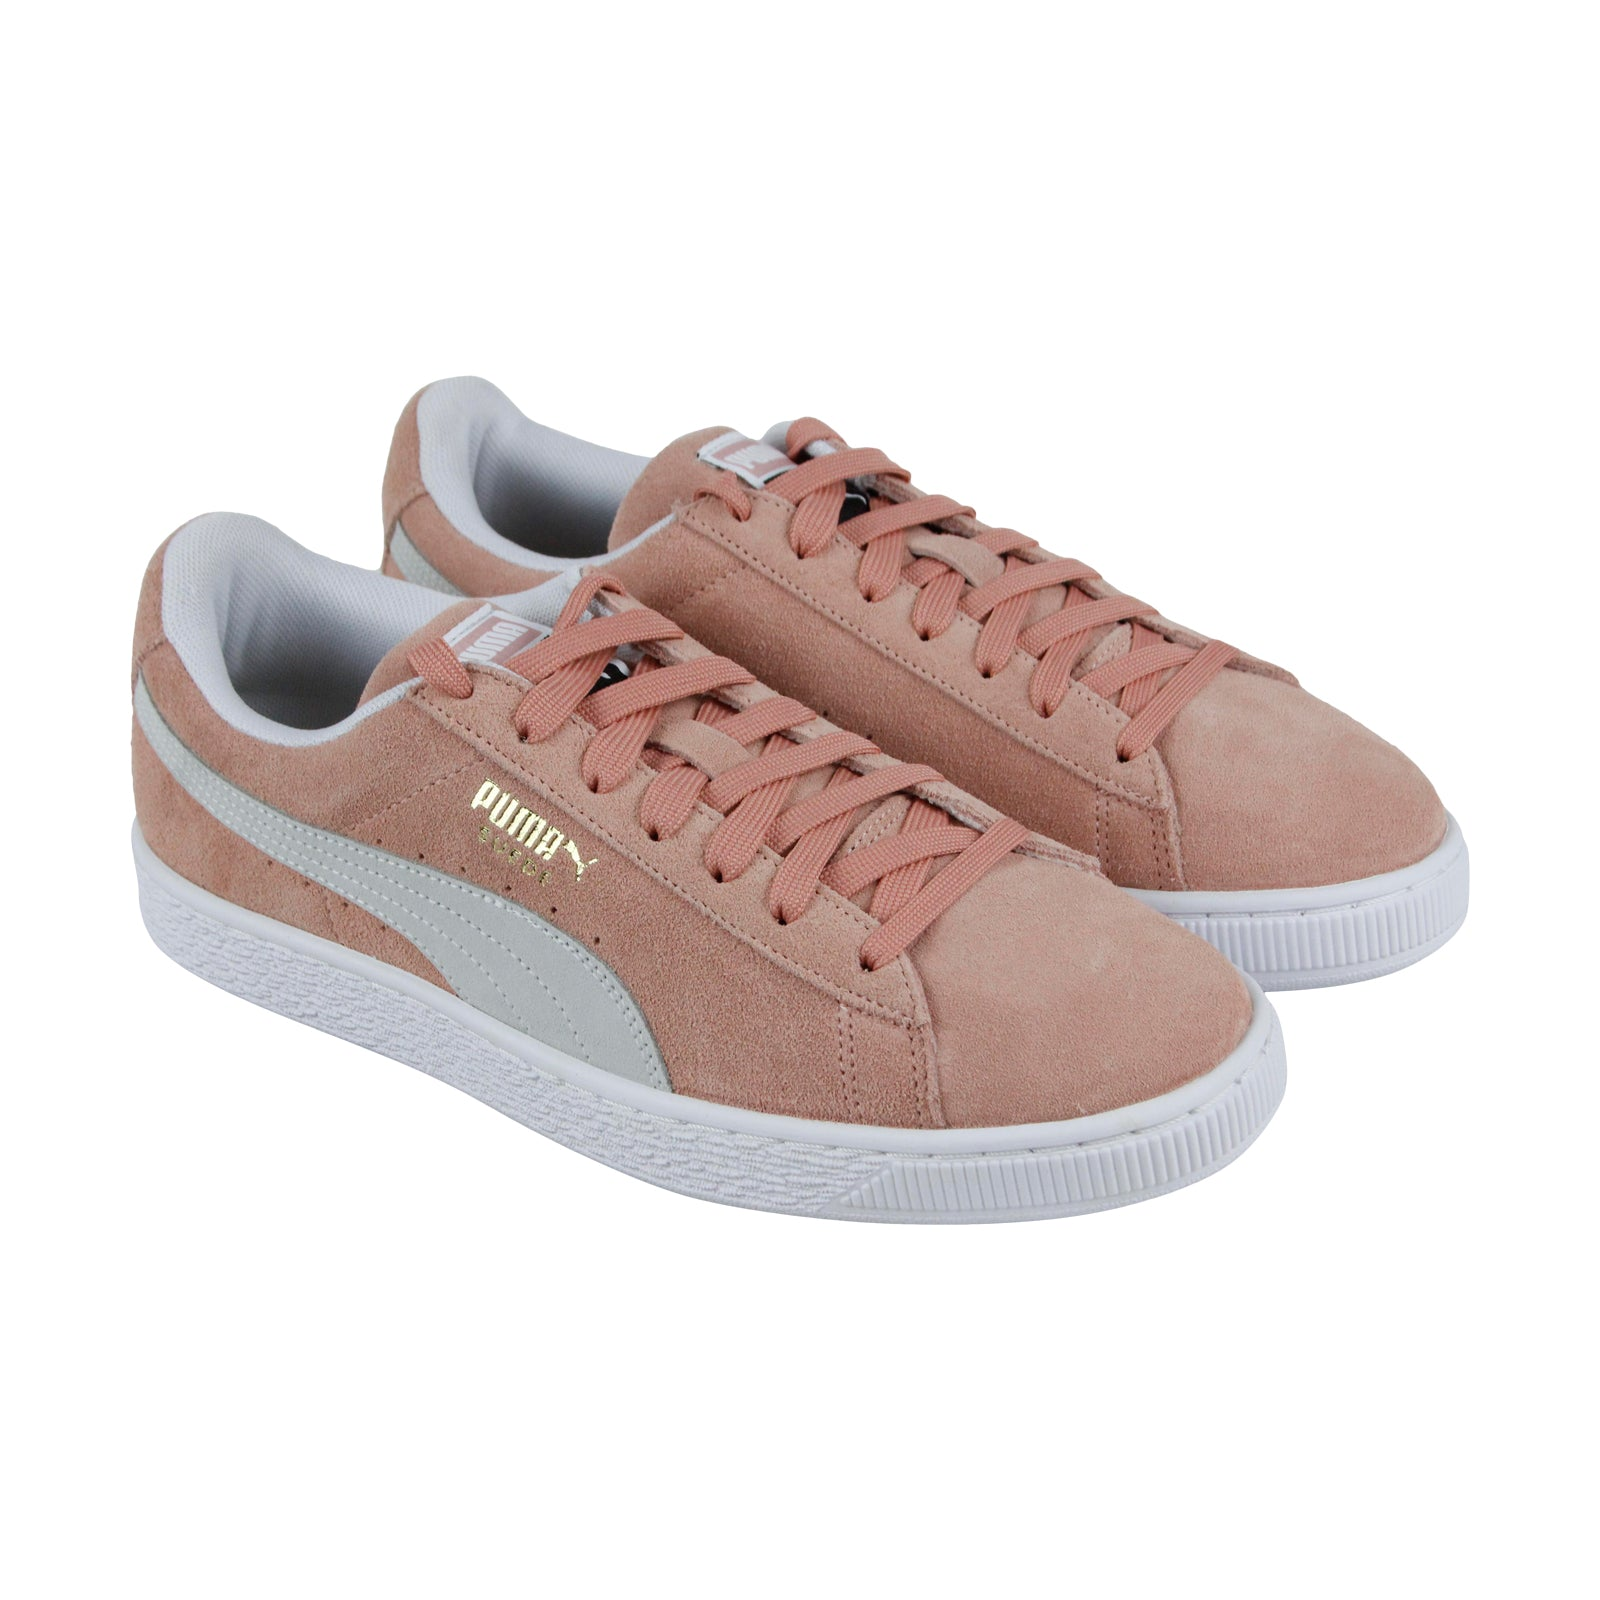 another chance a42e1 62f0f Puma Suede Classic Mens Pink Suede Low Top Lace Up Sneakers Shoes